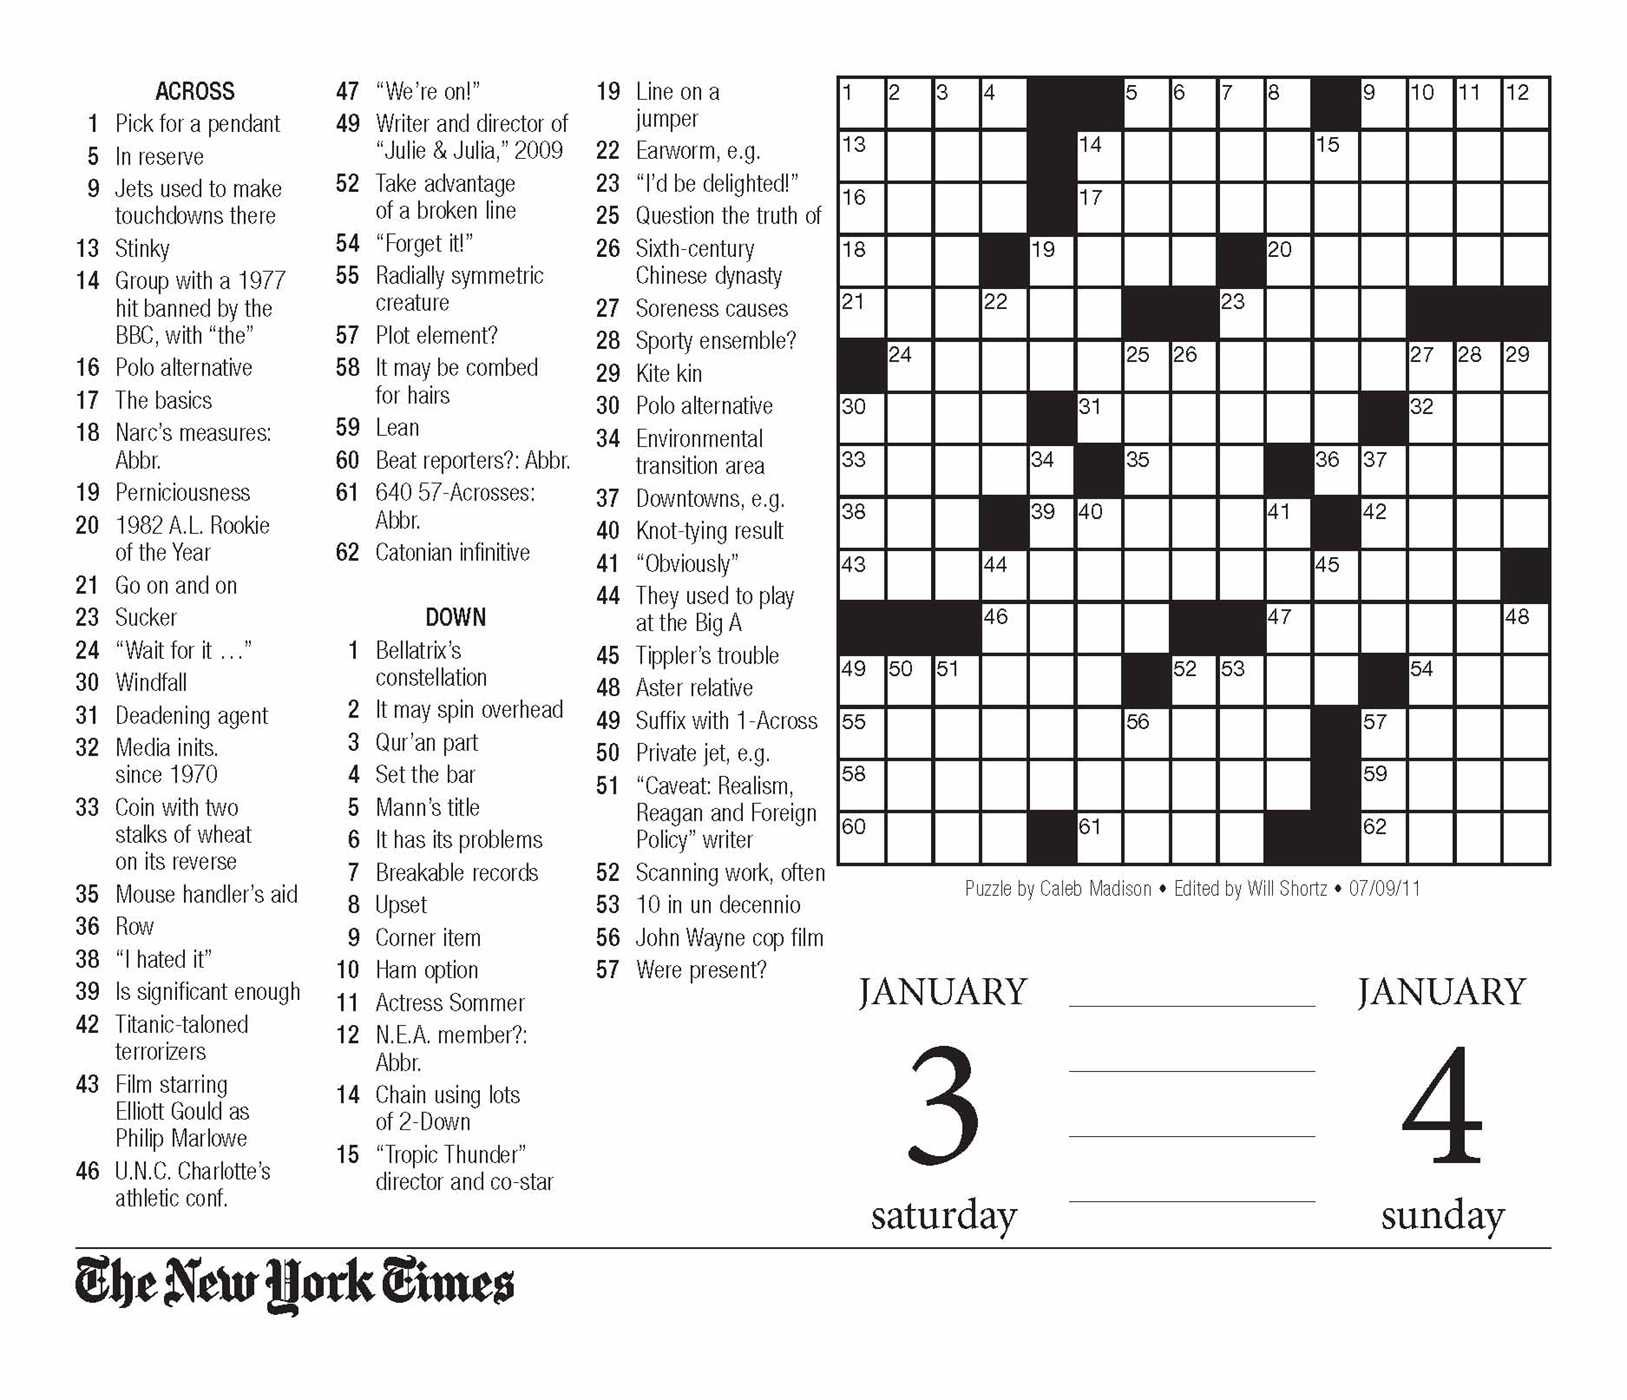 the new york times crossword puzzles 2015 day to day calendar edited by will shortz the new york times 0050837332744 amazoncom books